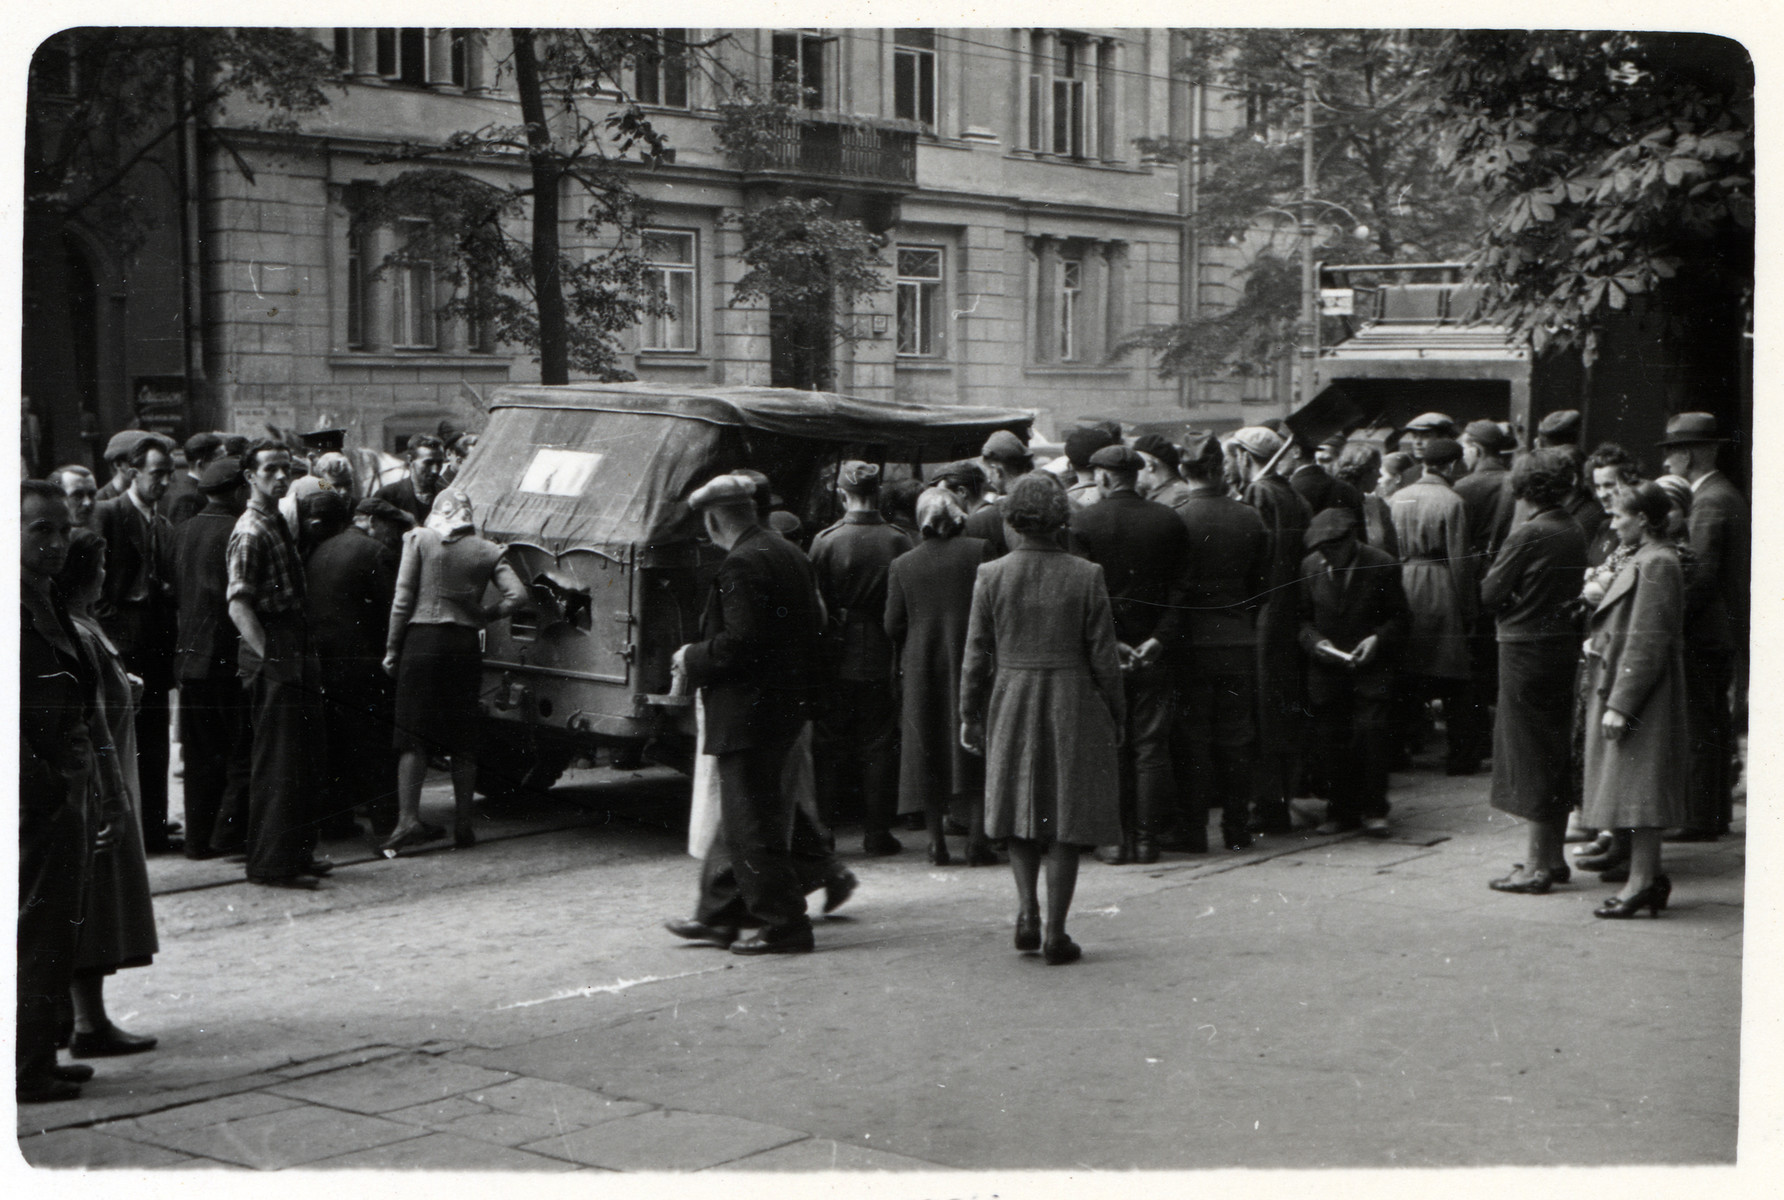 A crowd of Polish spectators surround military vehicles on a street in Poland.